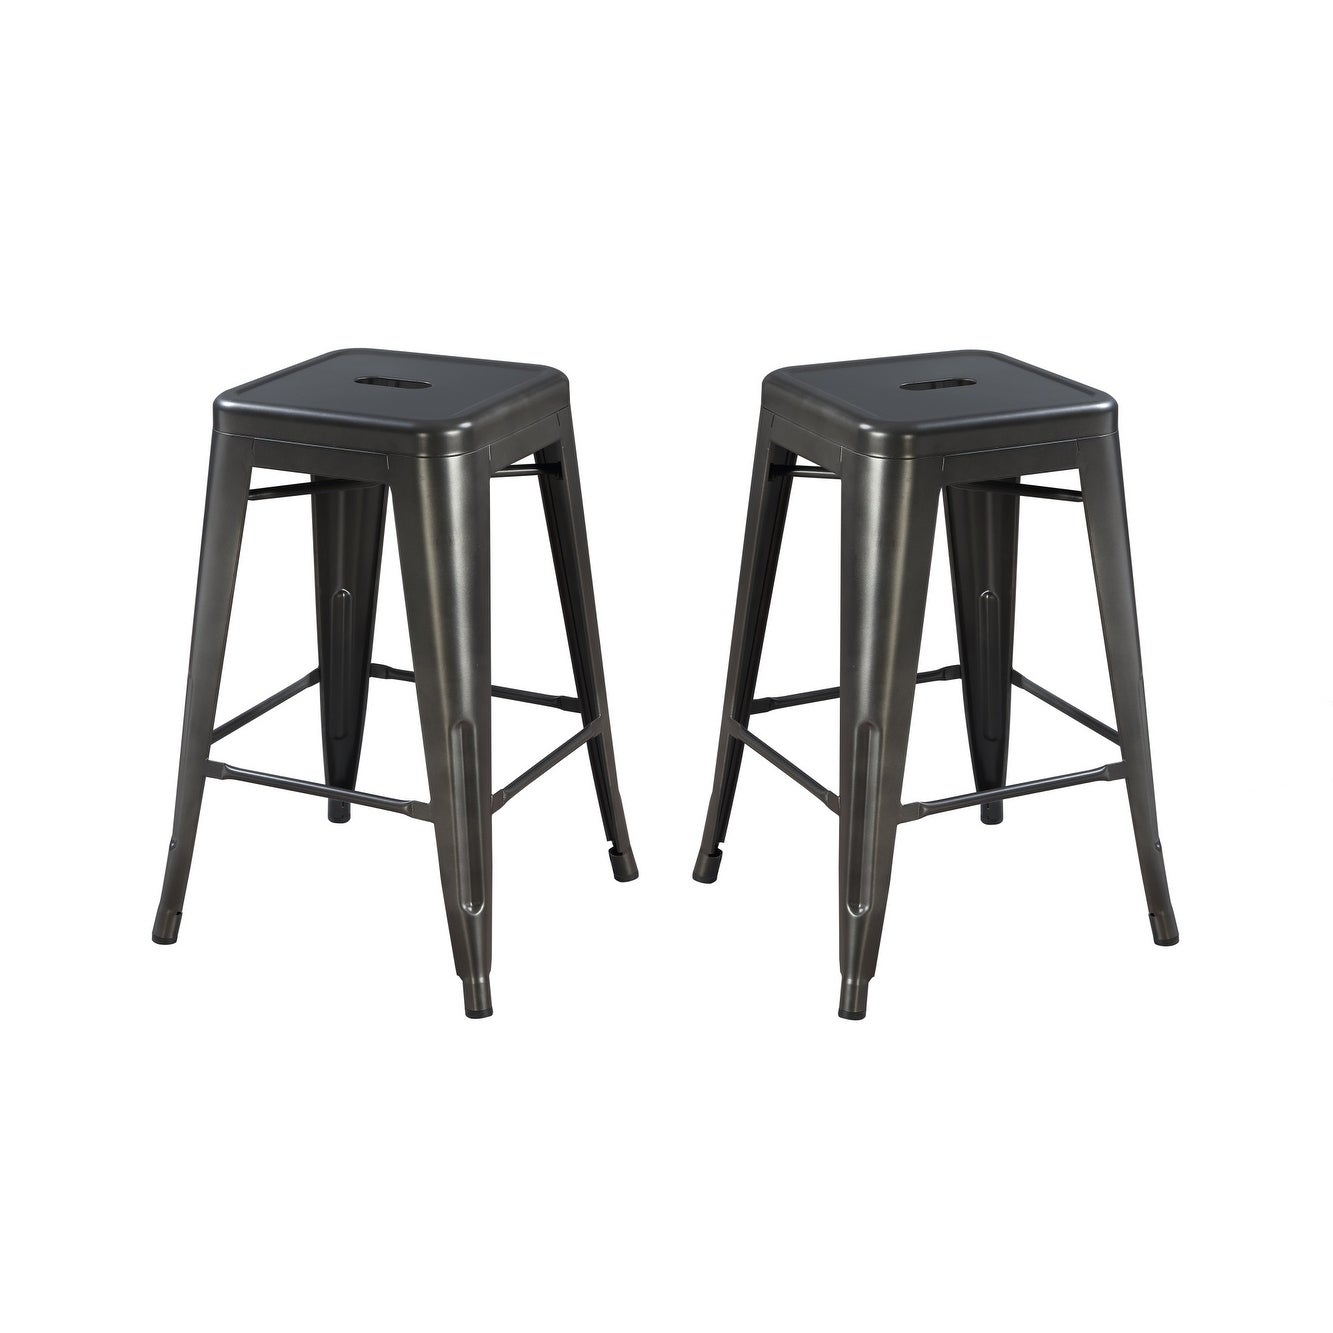 Outstanding Emerald Home Dakota Ii Gunmetal Gray 24 Bar Stool With All Metal Seat And Frame Set Of Two Theyellowbook Wood Chair Design Ideas Theyellowbookinfo